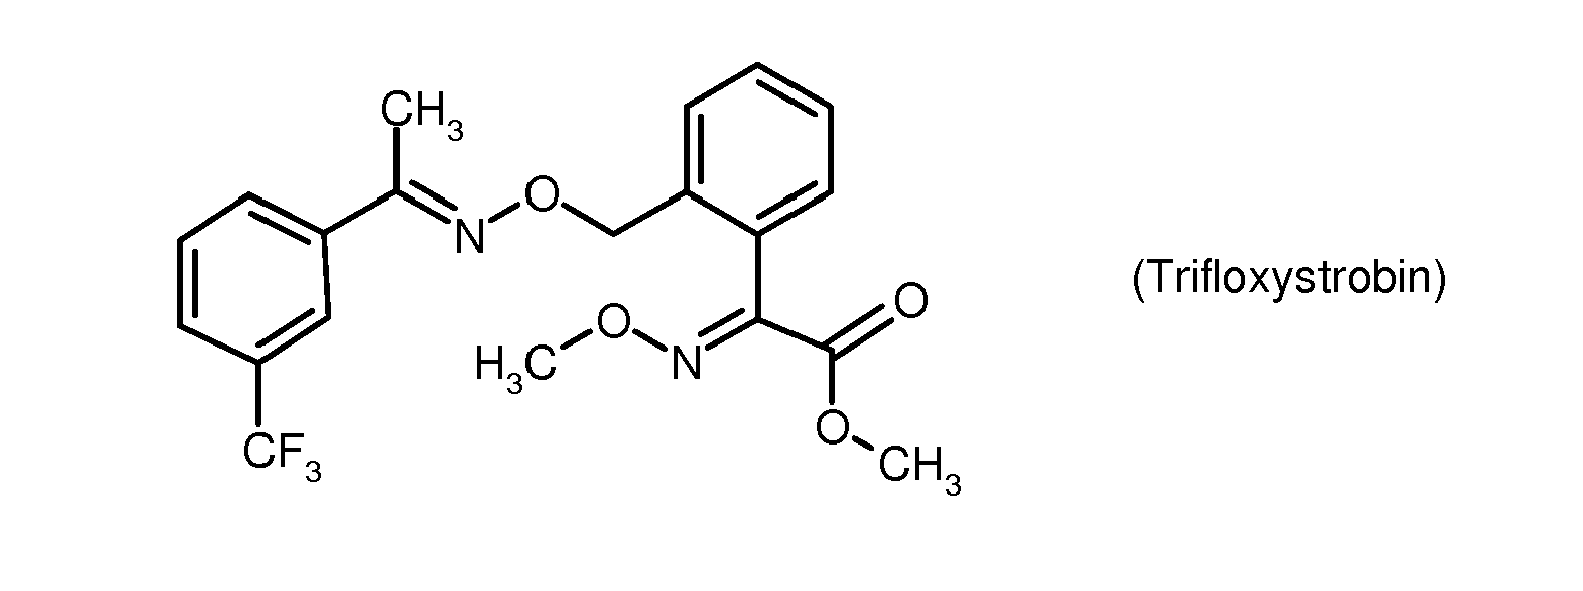 EP2258178A2 - Use of alkykl carboxylic acid amides as